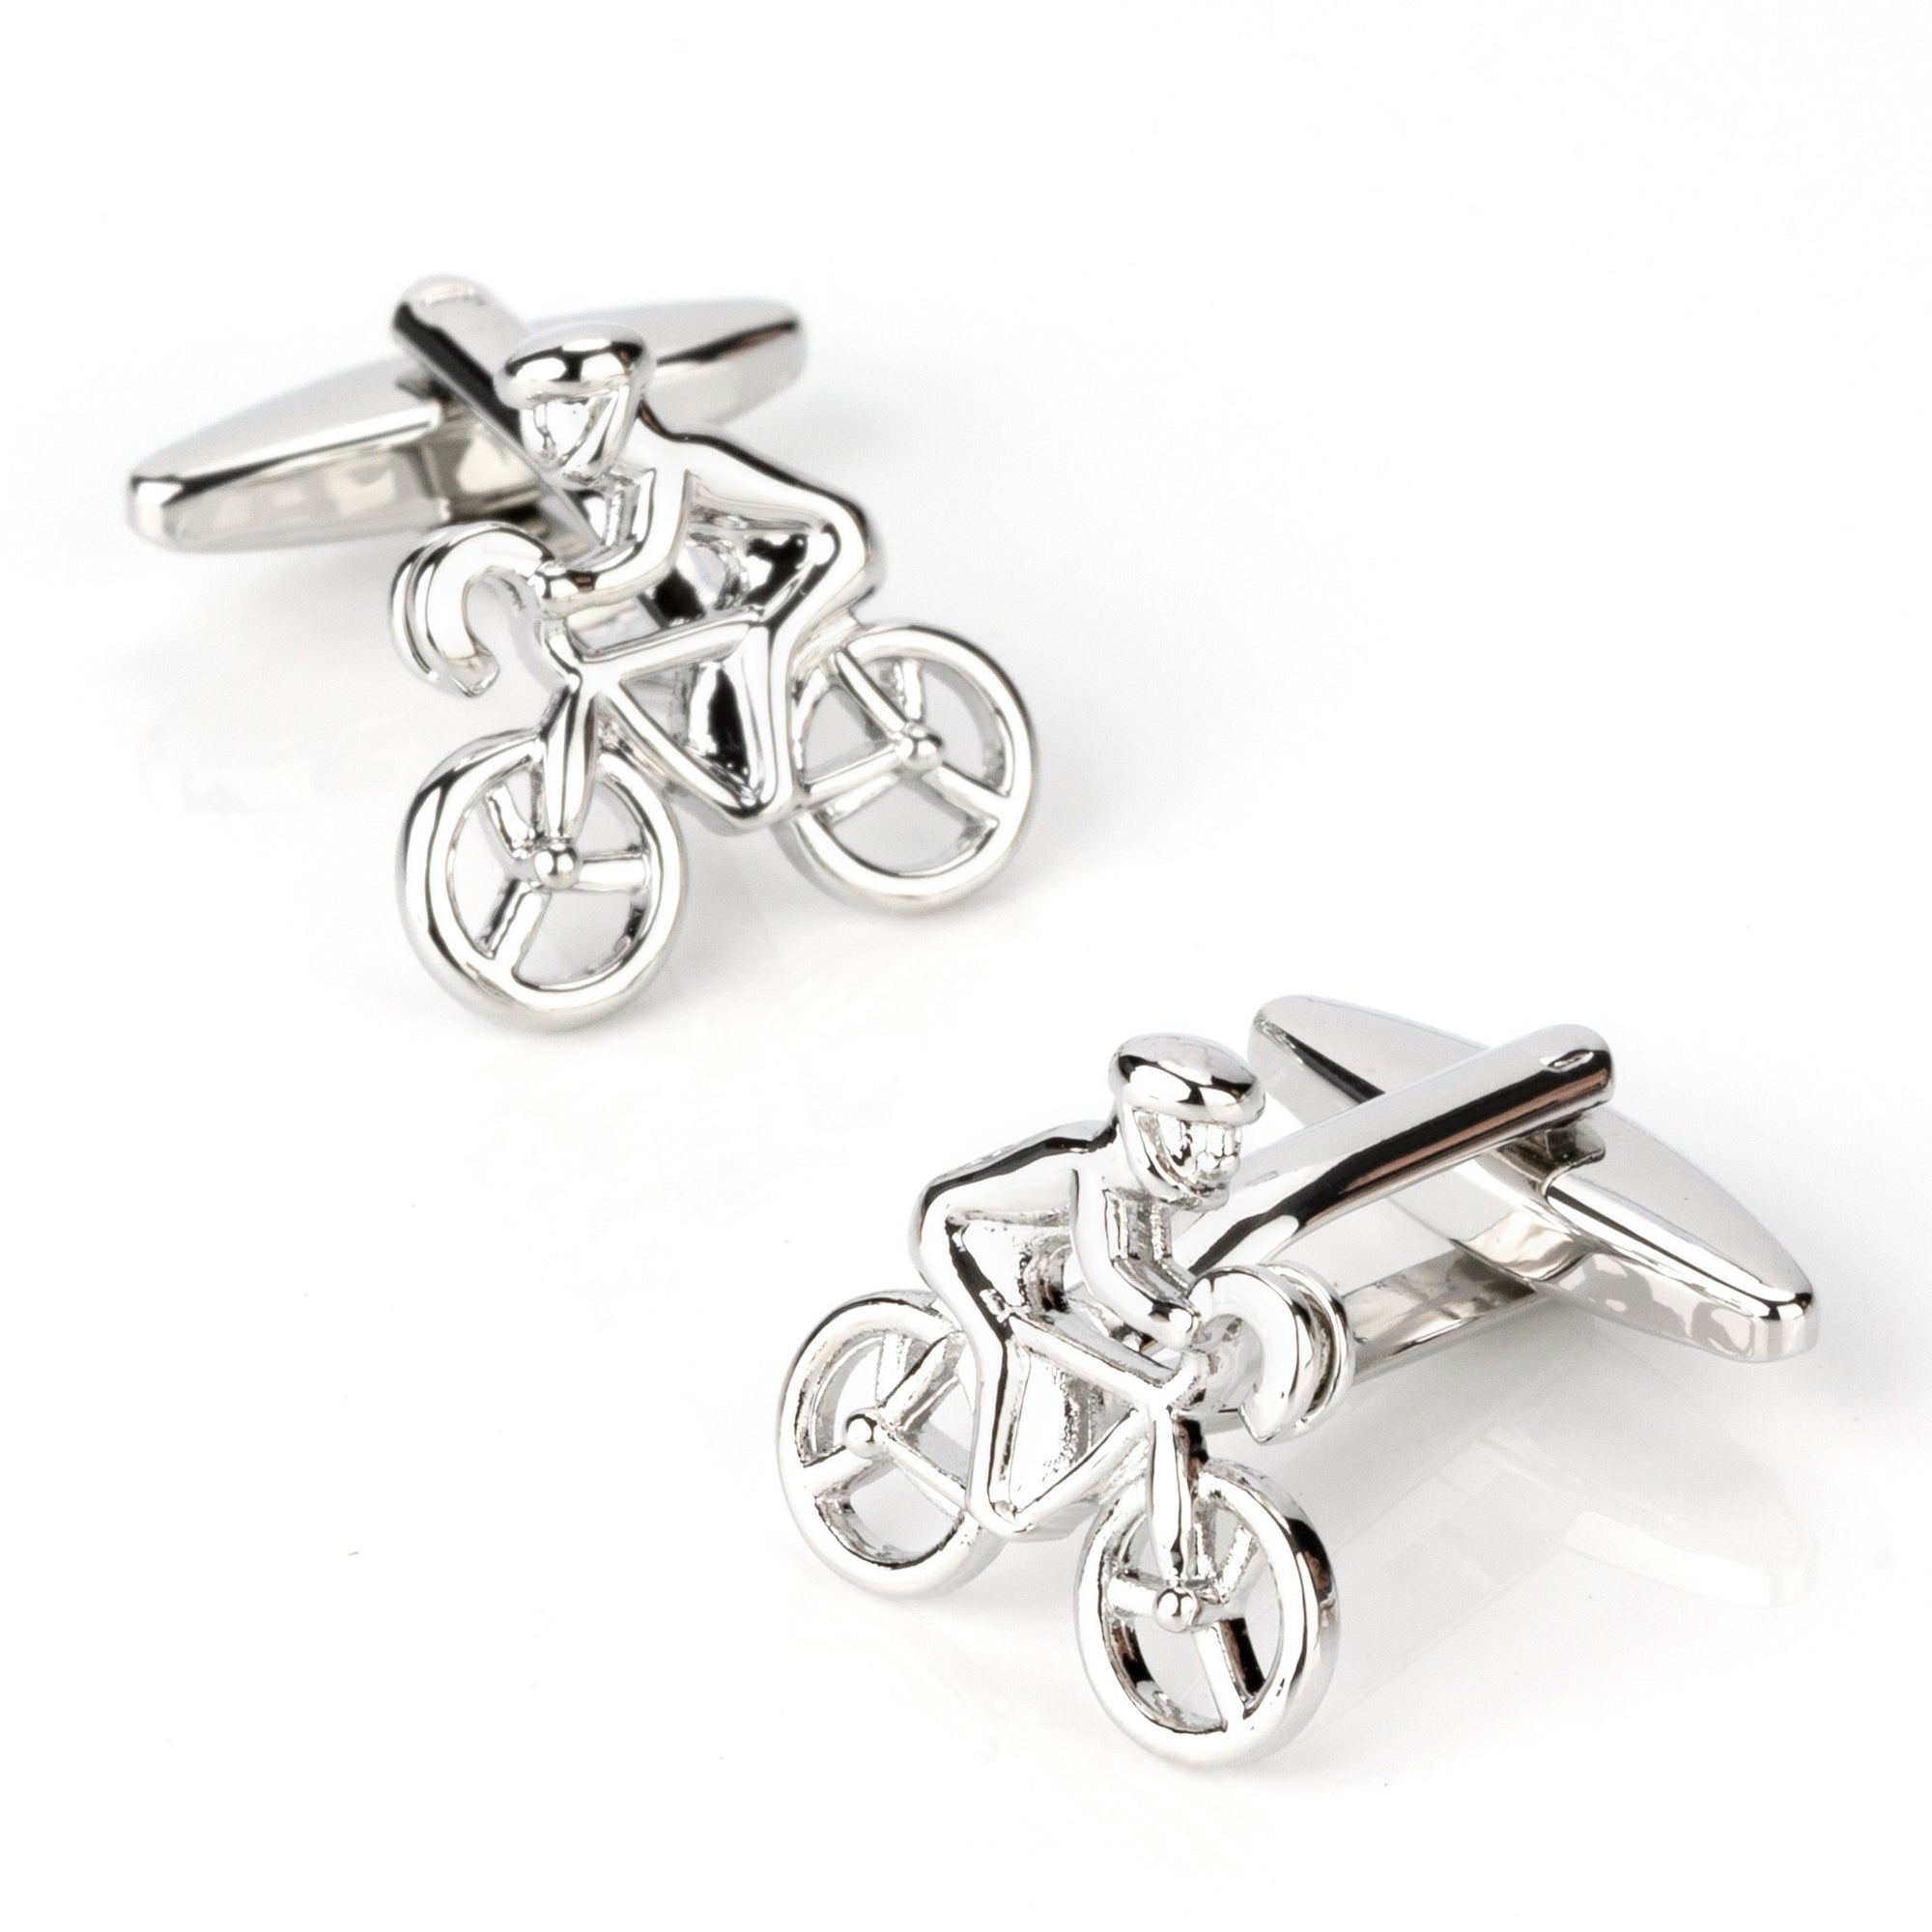 Silver Bicycle Cyclist Cufflinks, Novelty Cufflinks, Cuffed.com.au, CL4041, Bicycles & Motorcycles, Silver, Sports, Clinks Australia